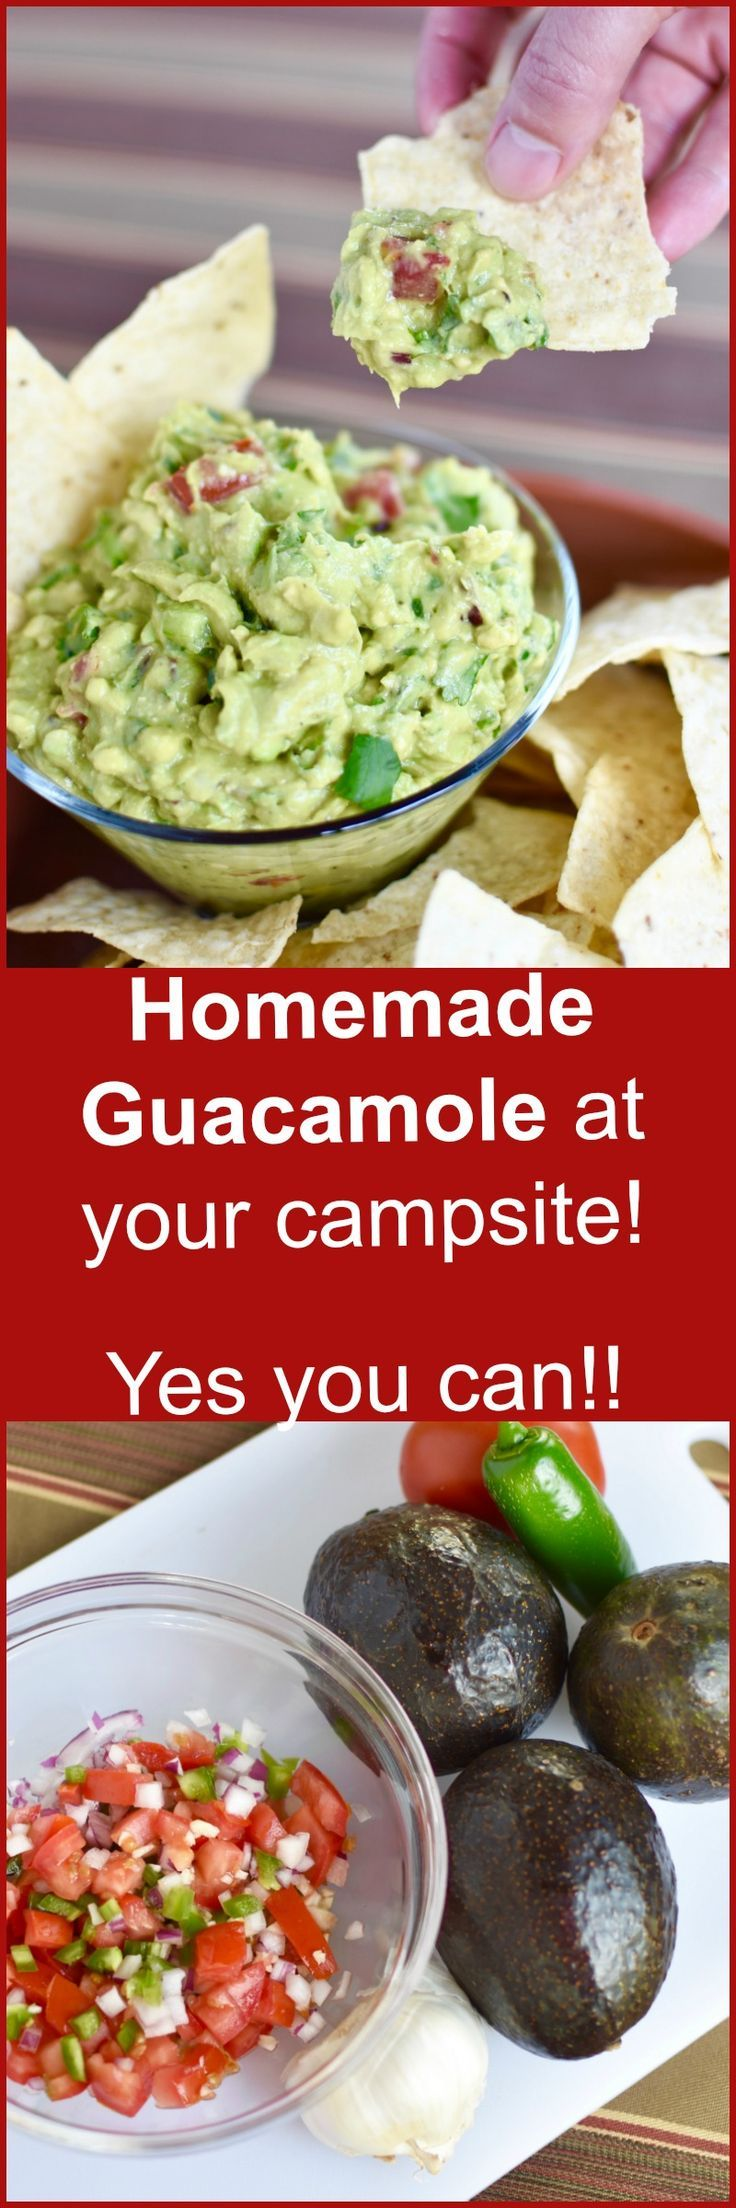 This long time family favorite guacamole is full of garlic, onion, cilantro, jalapeño, and of course ripe avocados! This recipe is modified to make it perfect for camping!!